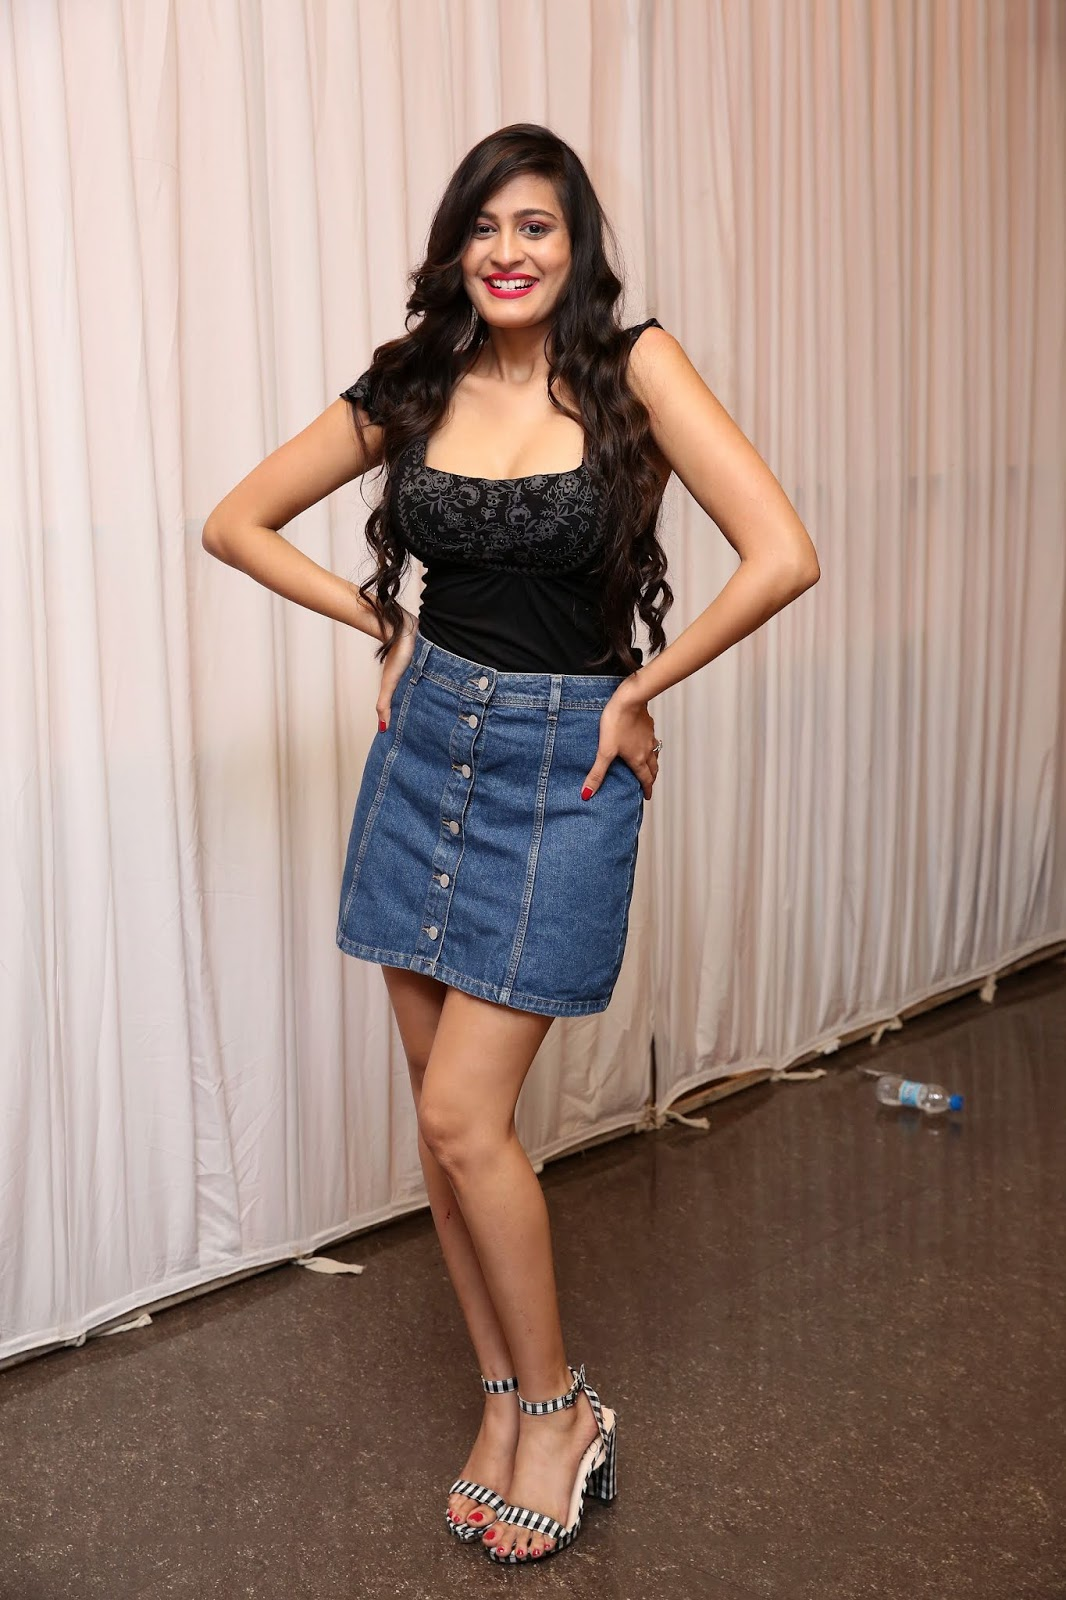 Swetha Jadhav Hot In Jeans Mini Skirt At Celebrity Cricket Tour To South Africa Jersey Launch